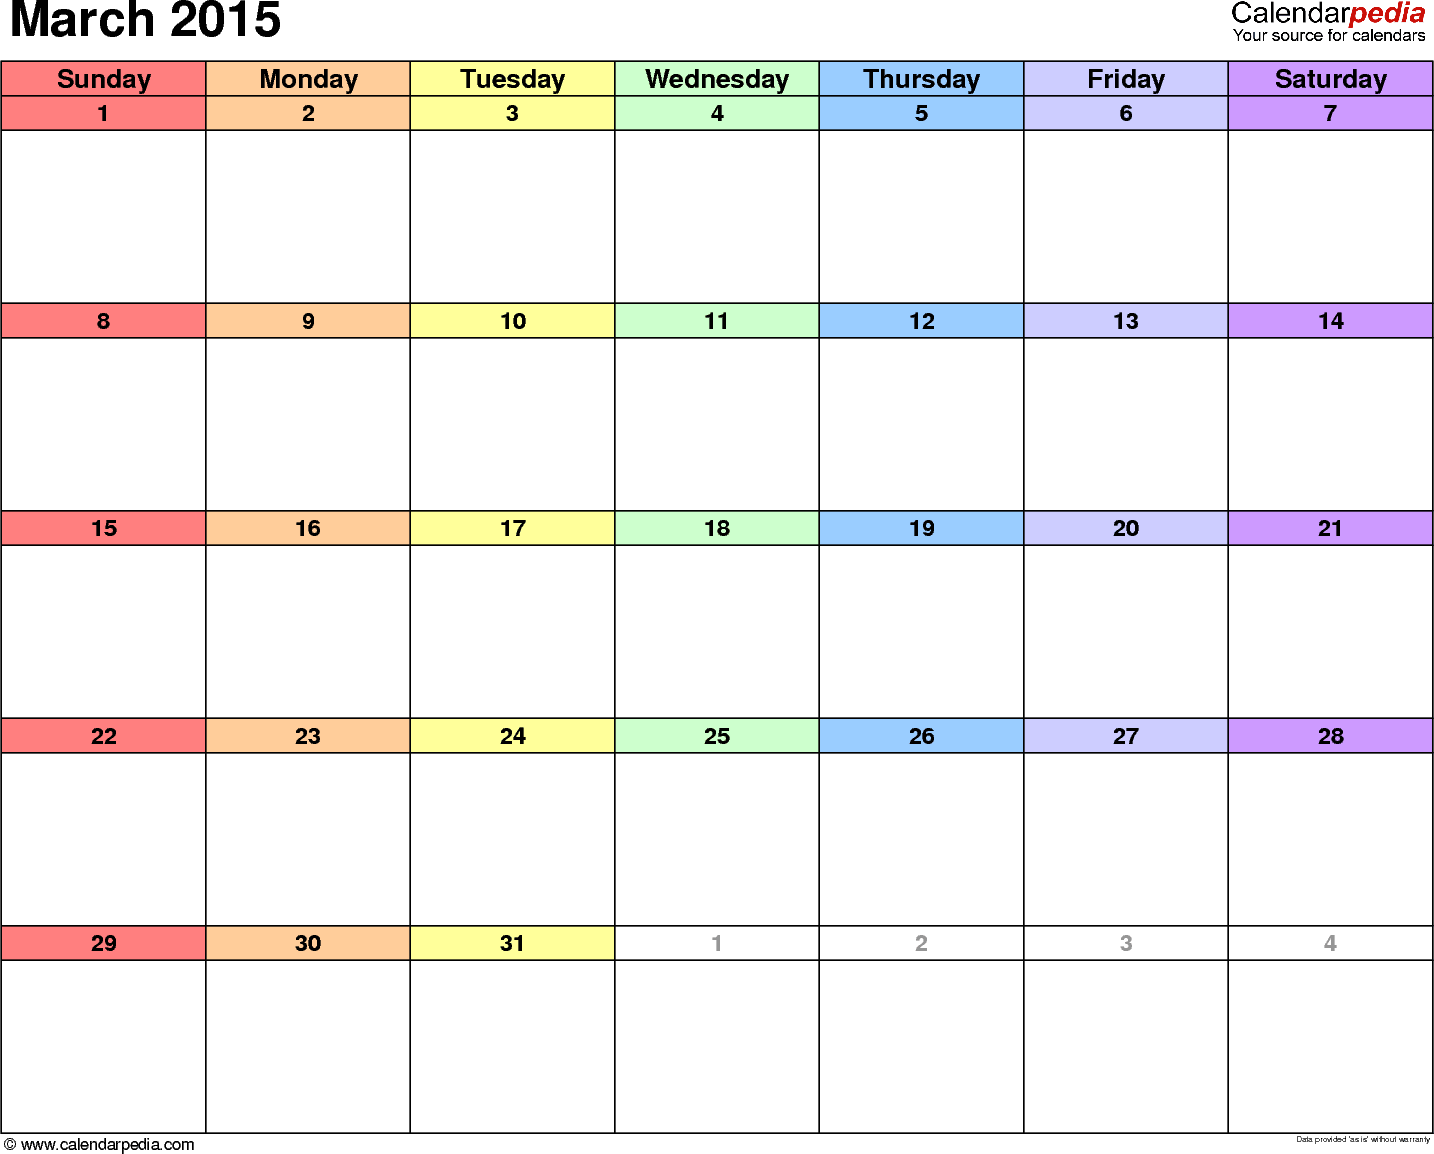 March 2015 Calendars for Word, Excel & PDF